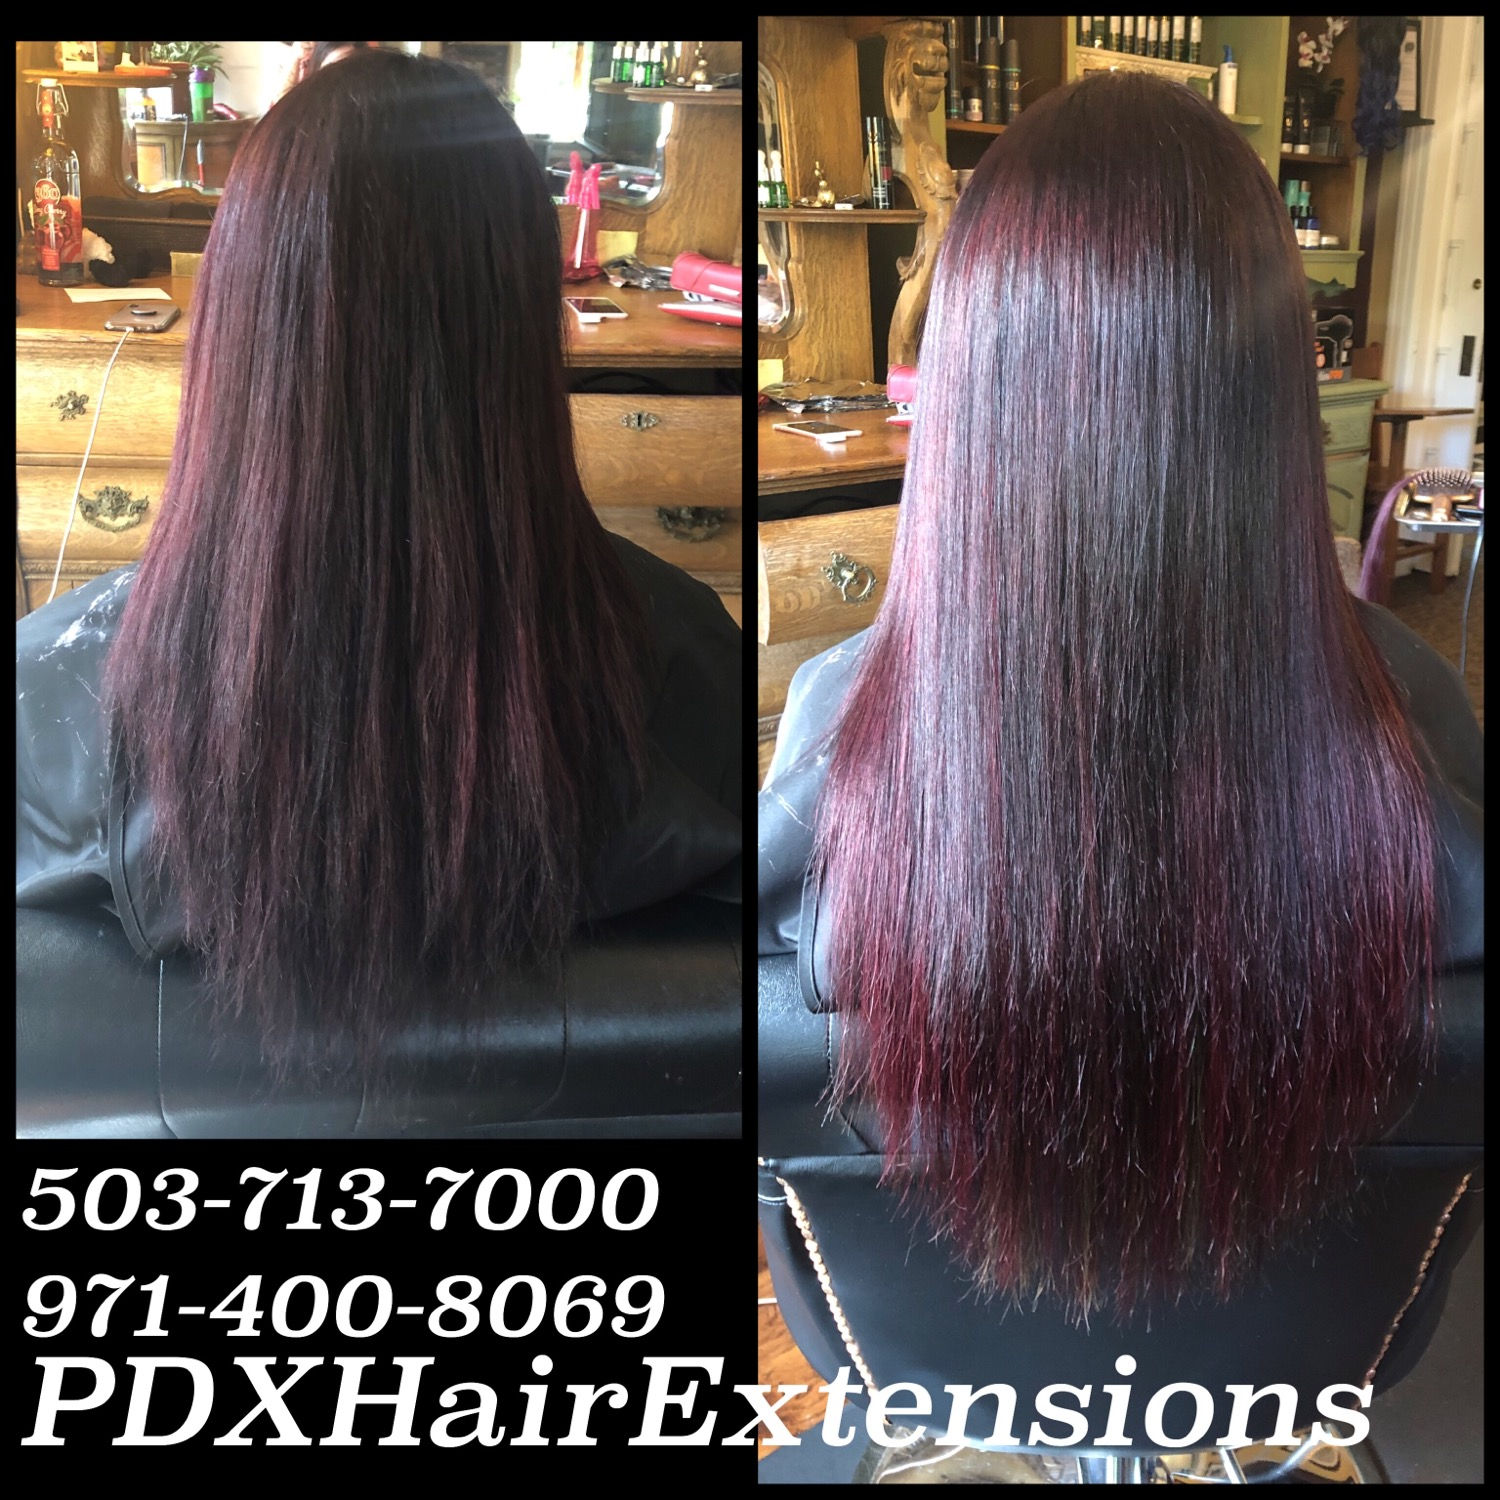 Plum Brunette Color & Extensions